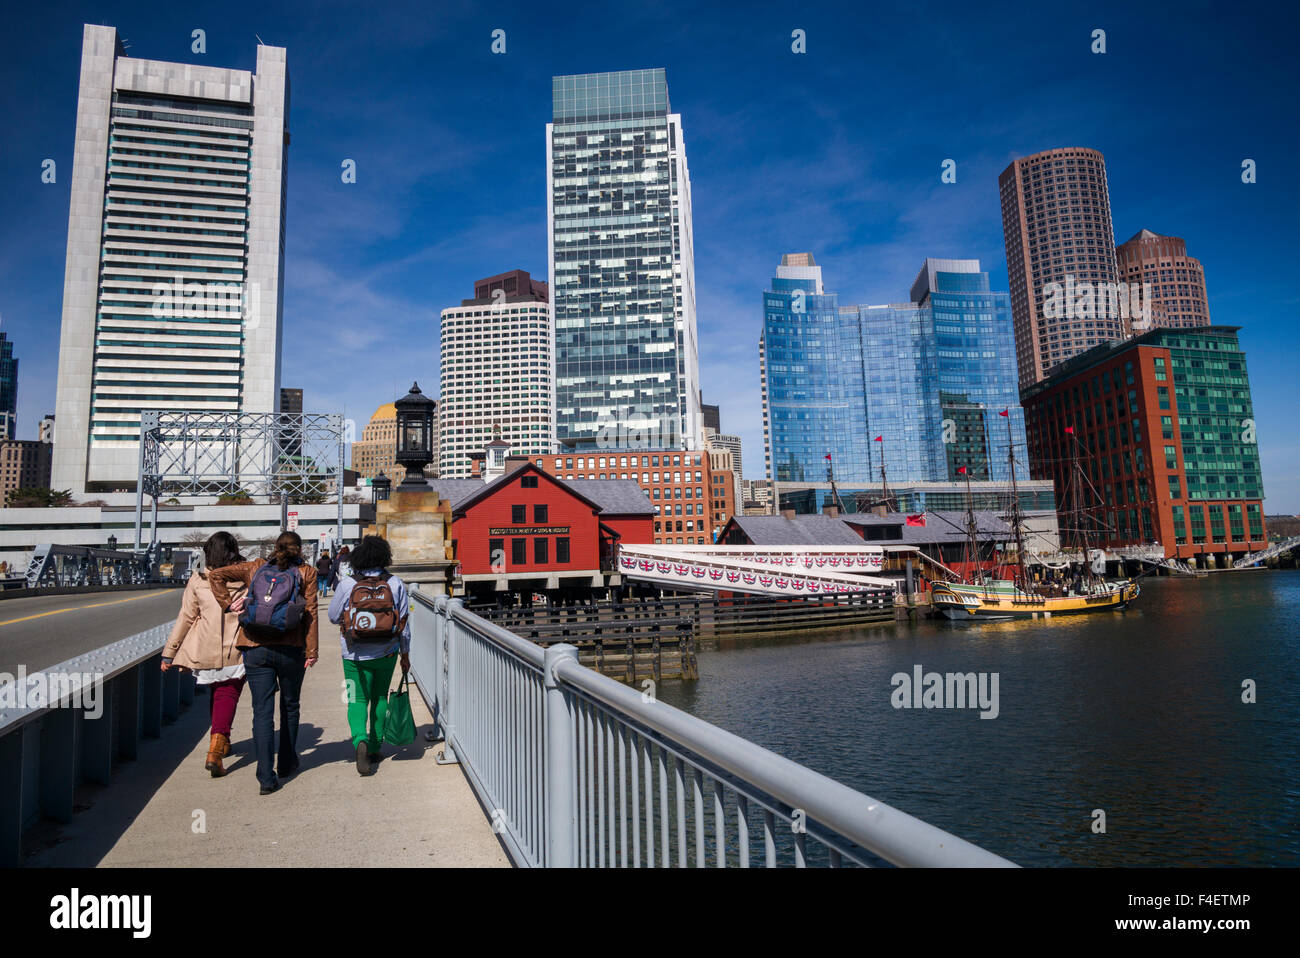 Massachusetts, Boston, Federal Reserve Bank, Intercontinental Hotel, and Boston Tea Party Museum - Stock Image